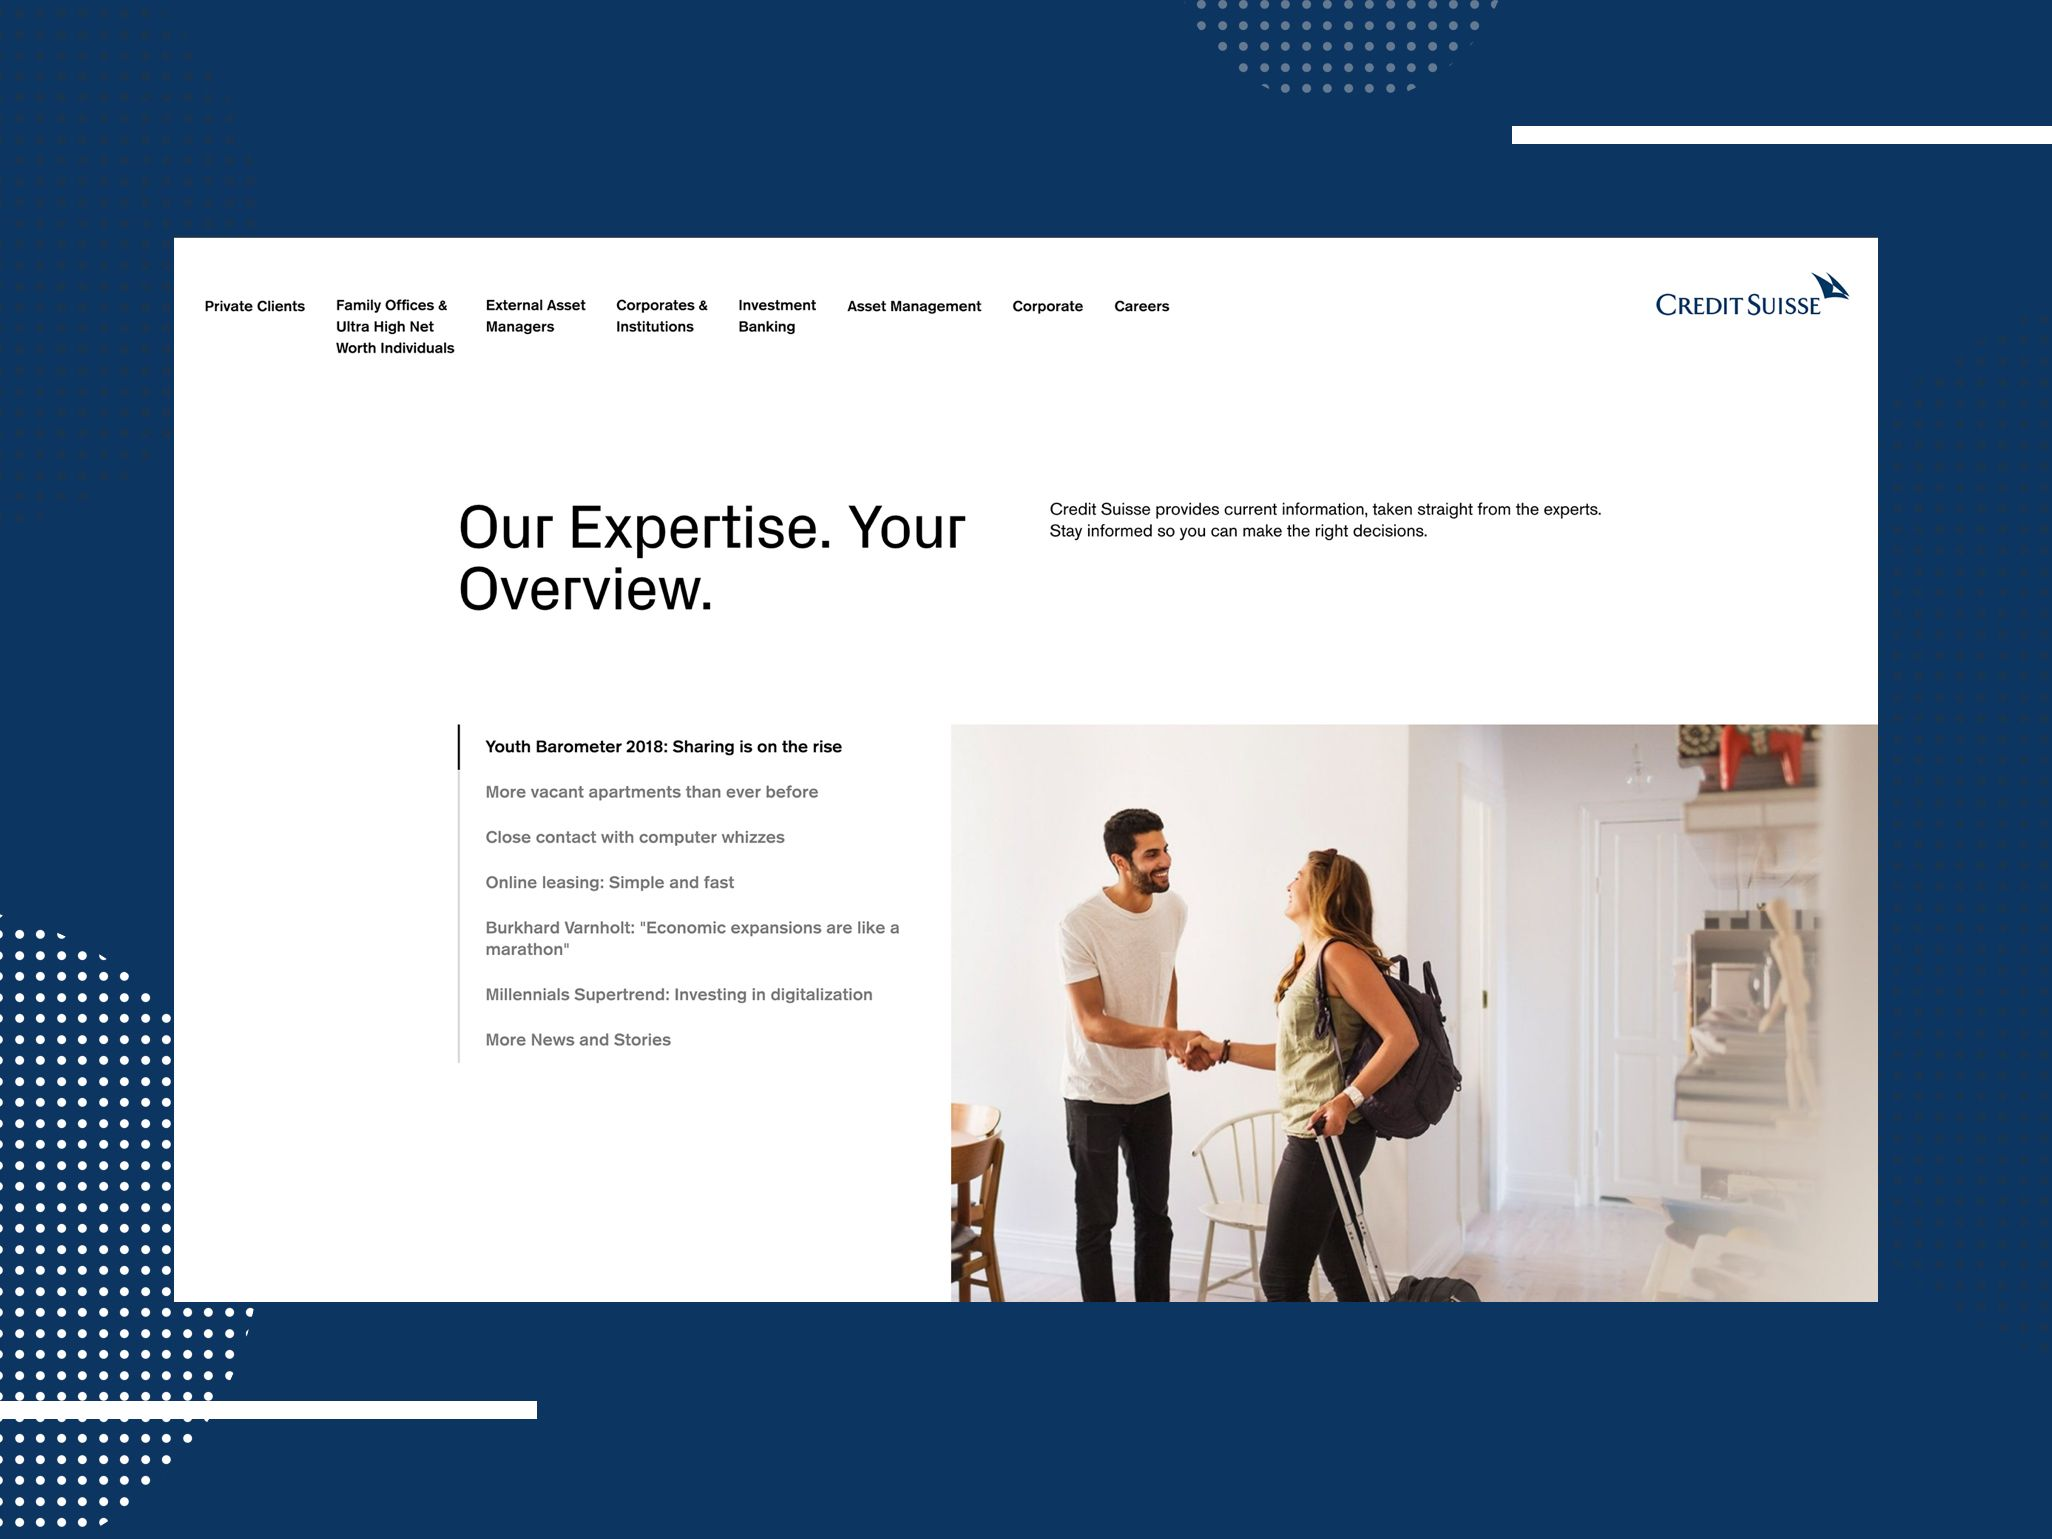 Credit Suisse - Ansicht Website: Our Expertise. Your Overview.